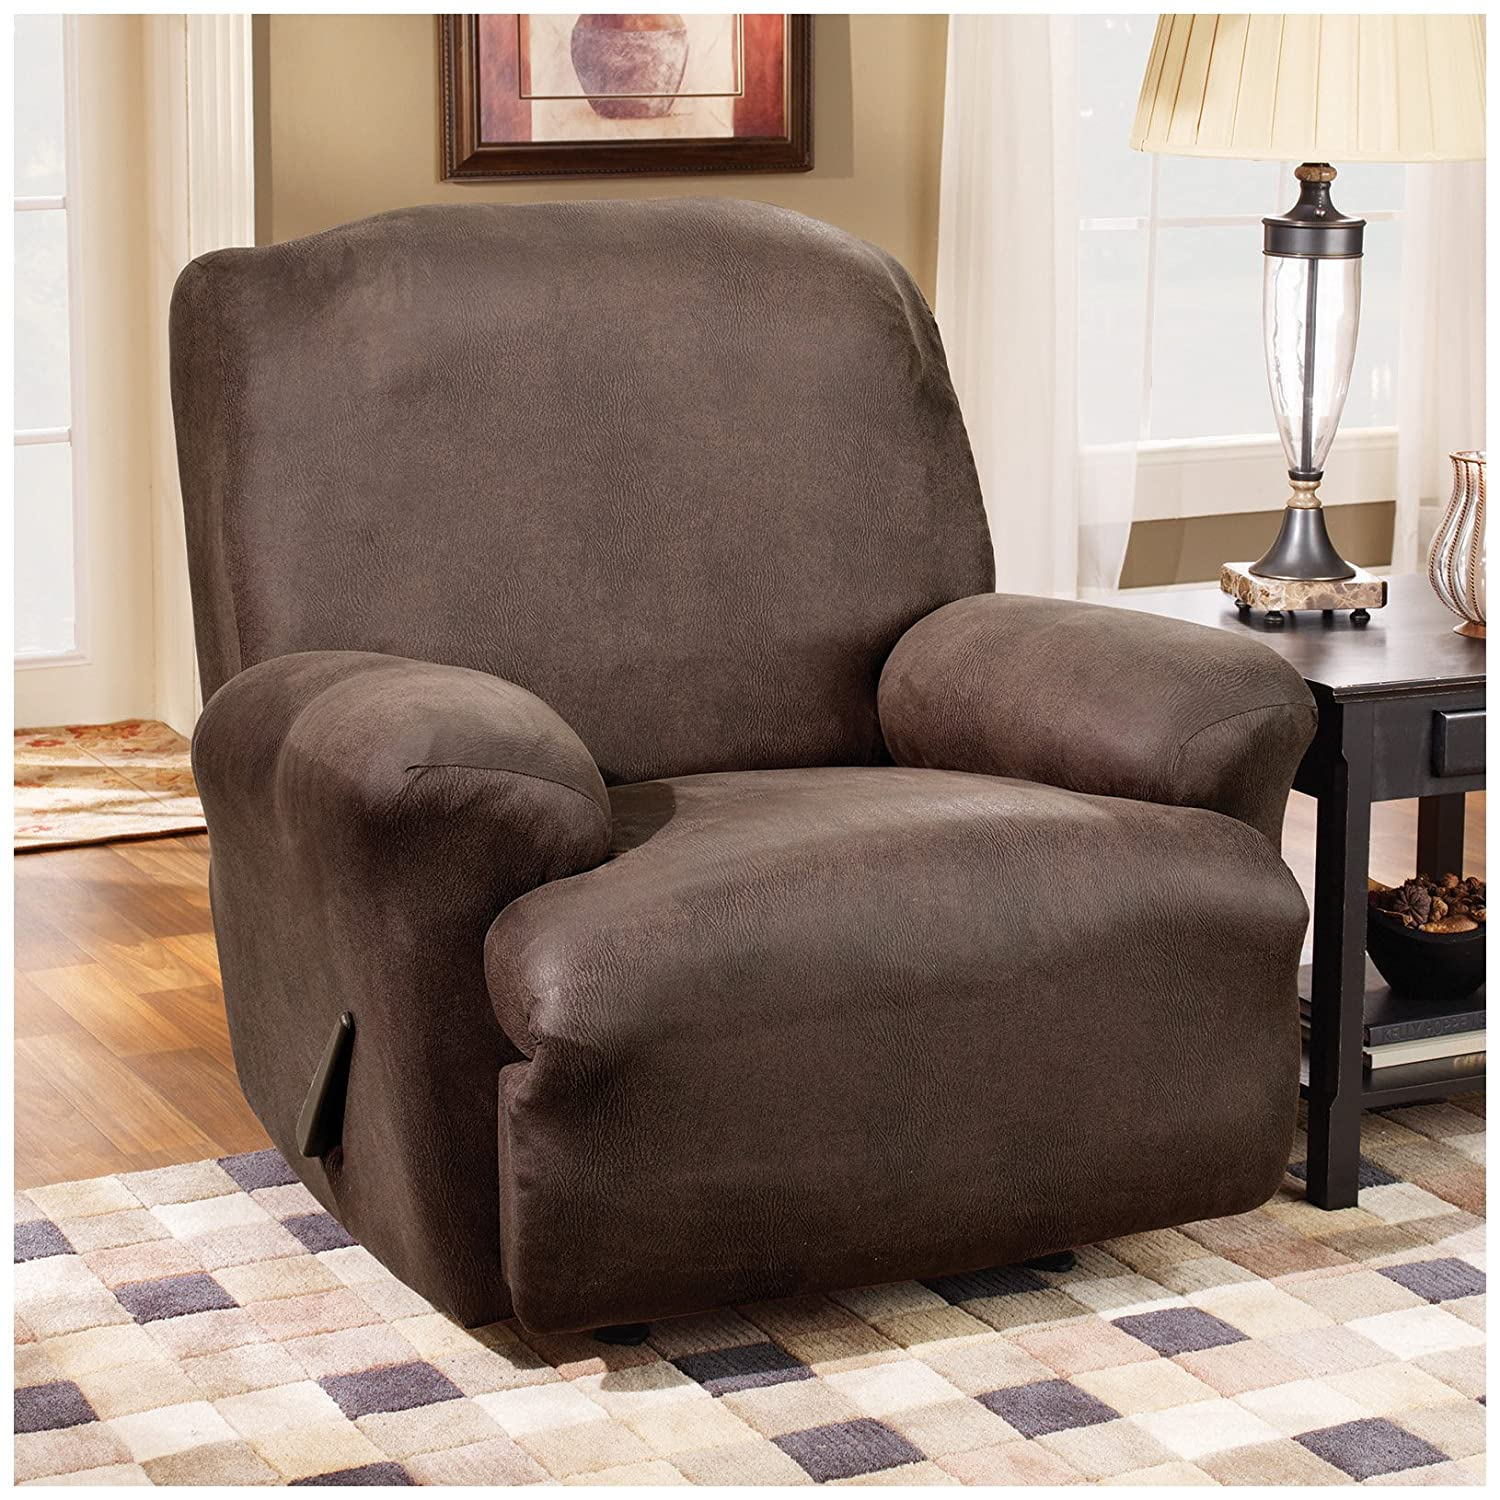 Amazon.com Sure Fit Stretch Leather 1-Piece - Recliner Slipcover - Brown (SF37162) Home u0026 Kitchen : reclining chair cover - islam-shia.org